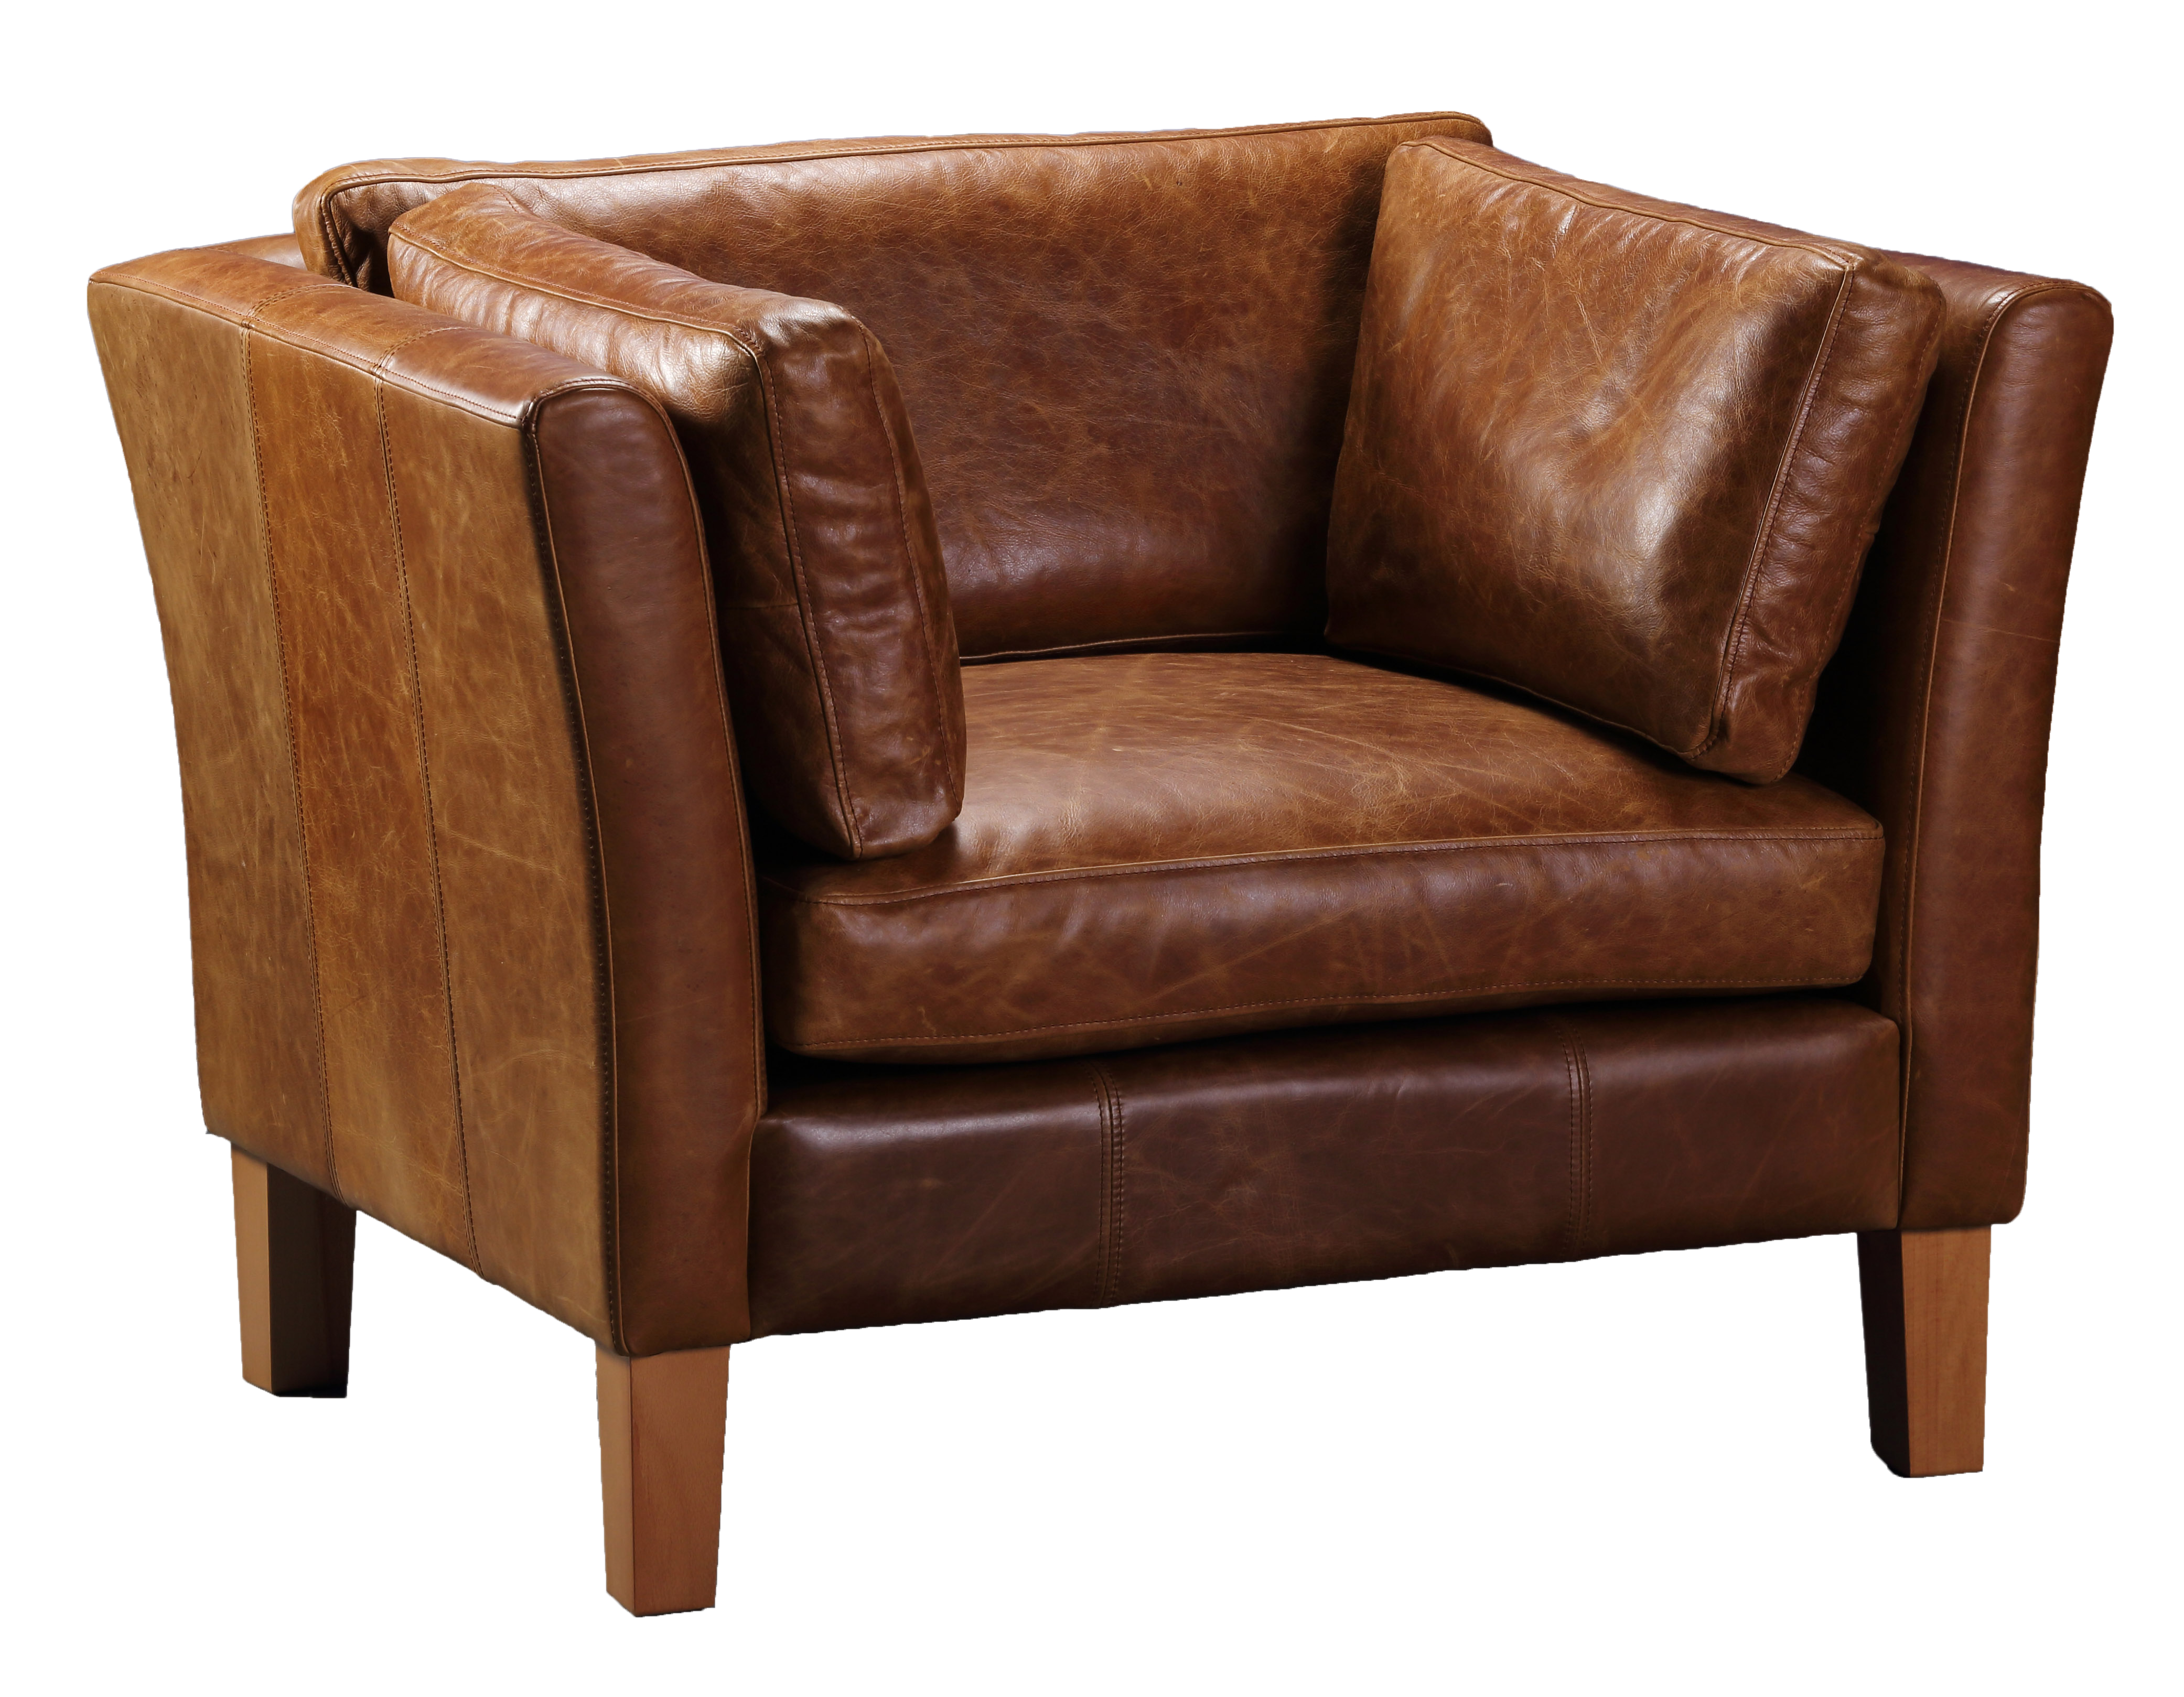 Barkby Full Aniline Leather Sofas-harris tweed leather sofas-Against The Grain Furniture-Chair-Against The Grain Furniture